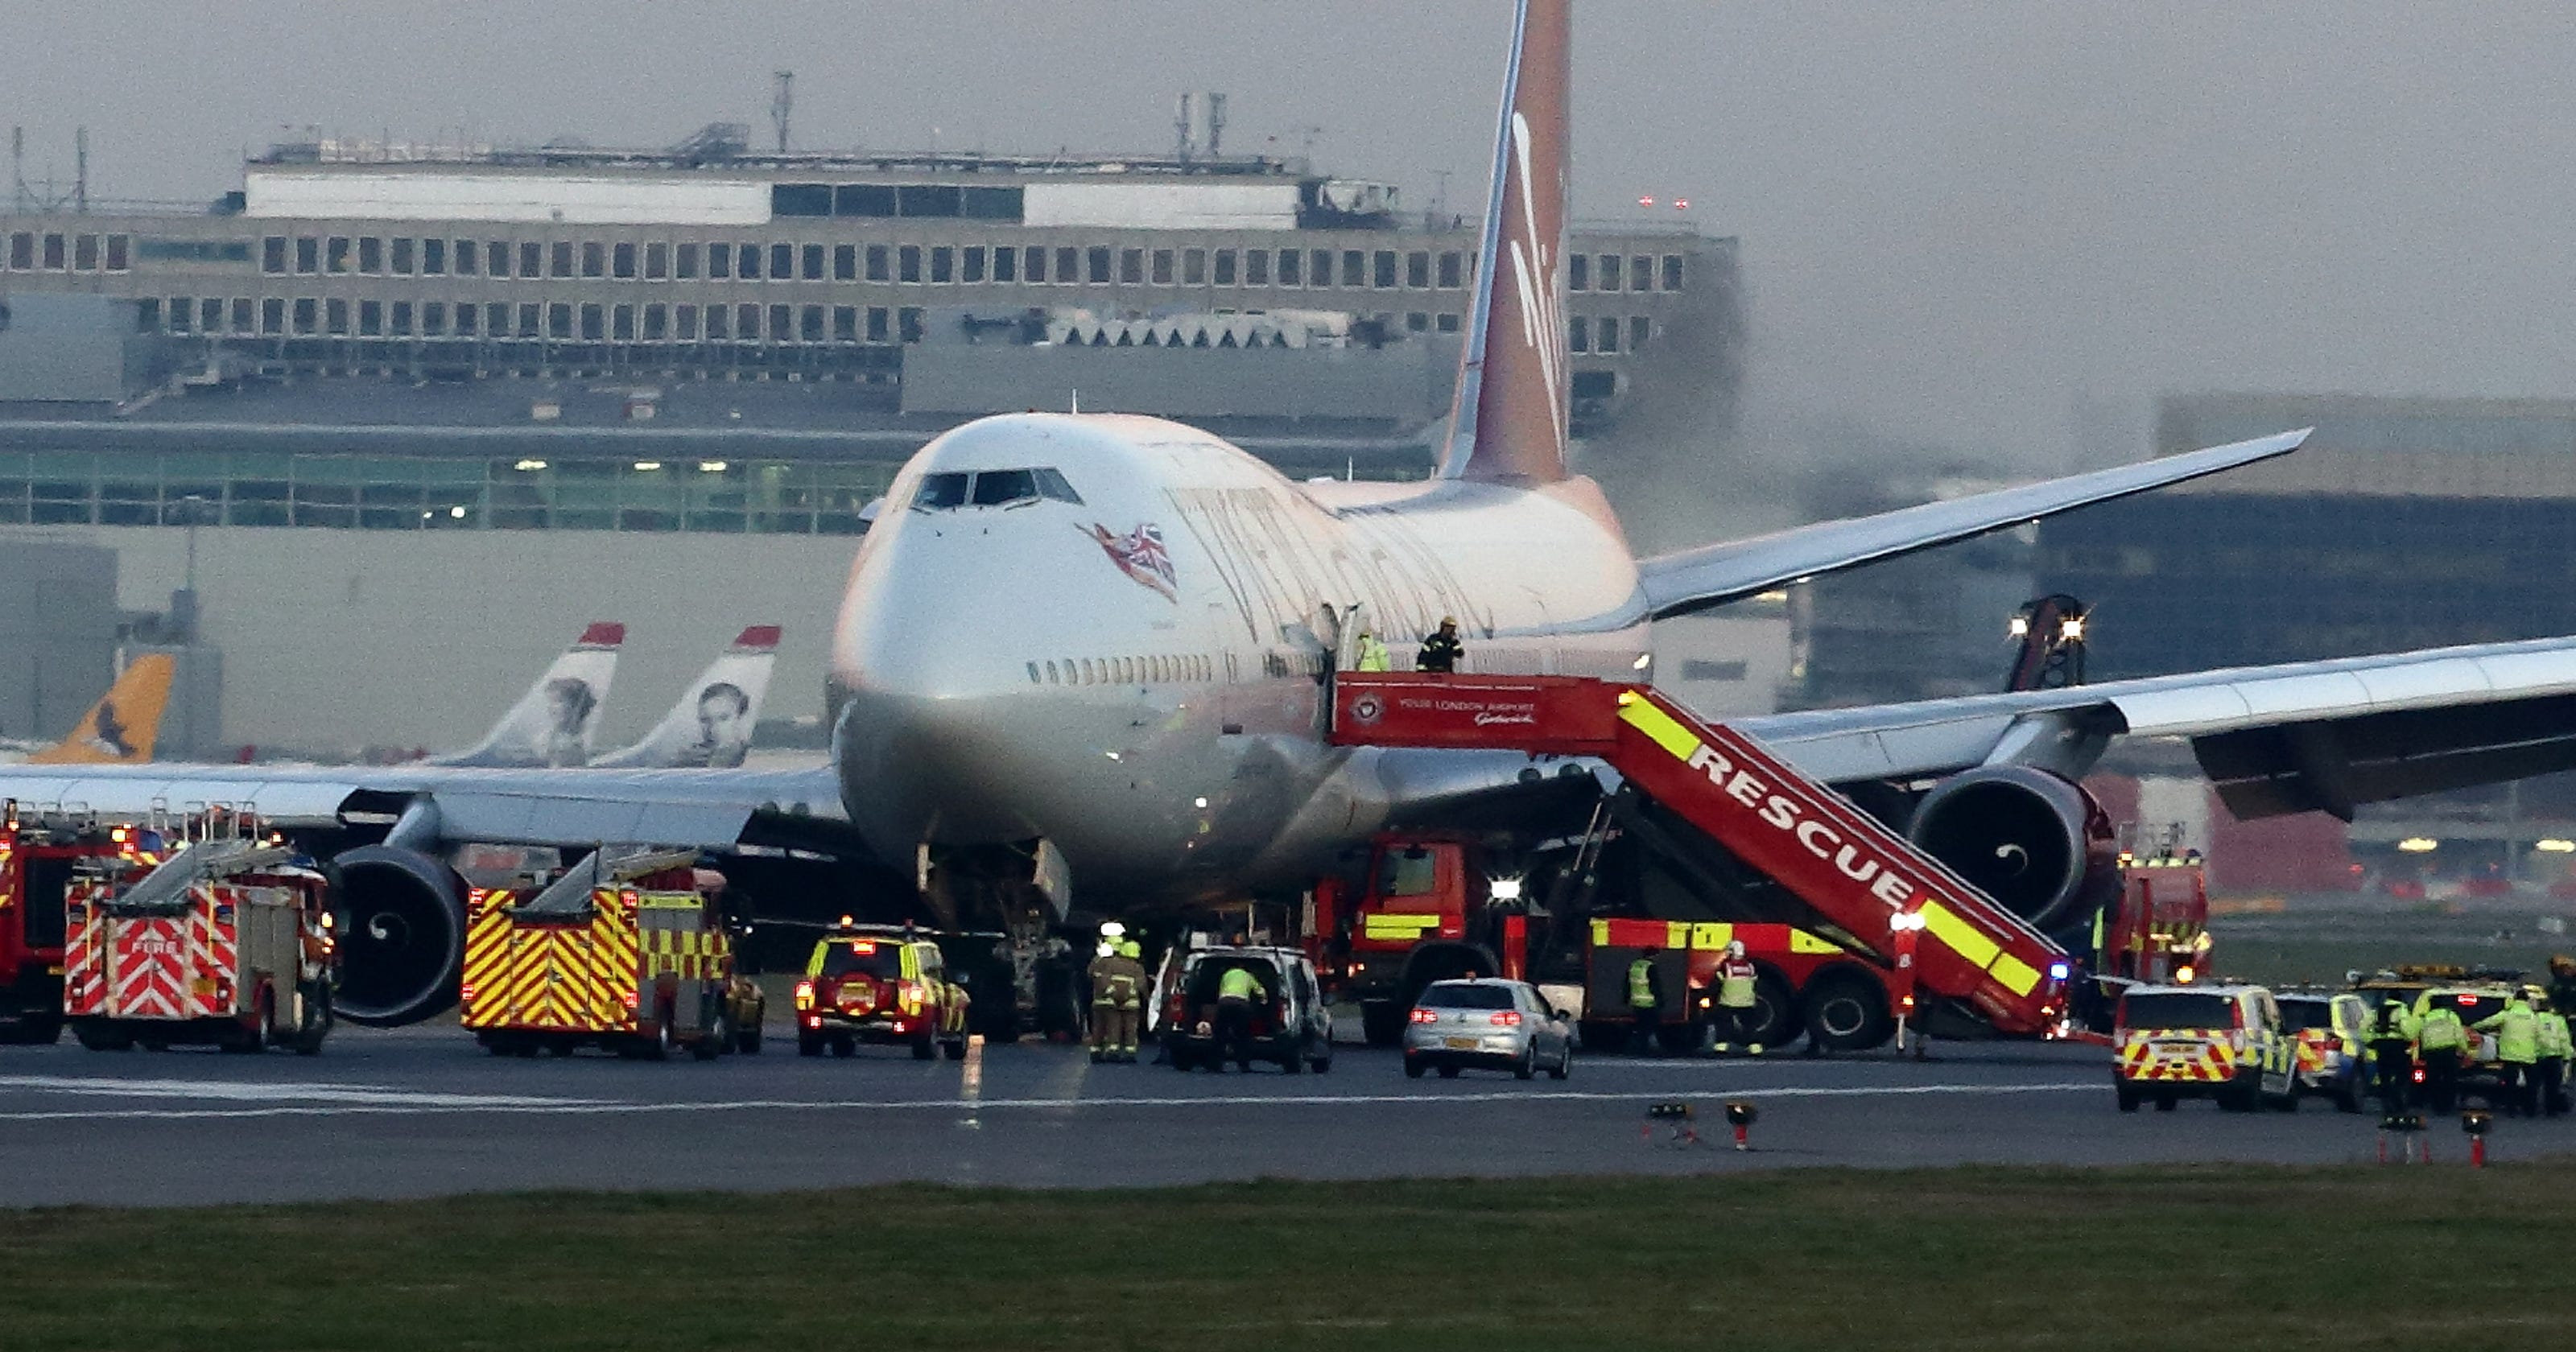 Ask the Captain: Protocol for emergency landings